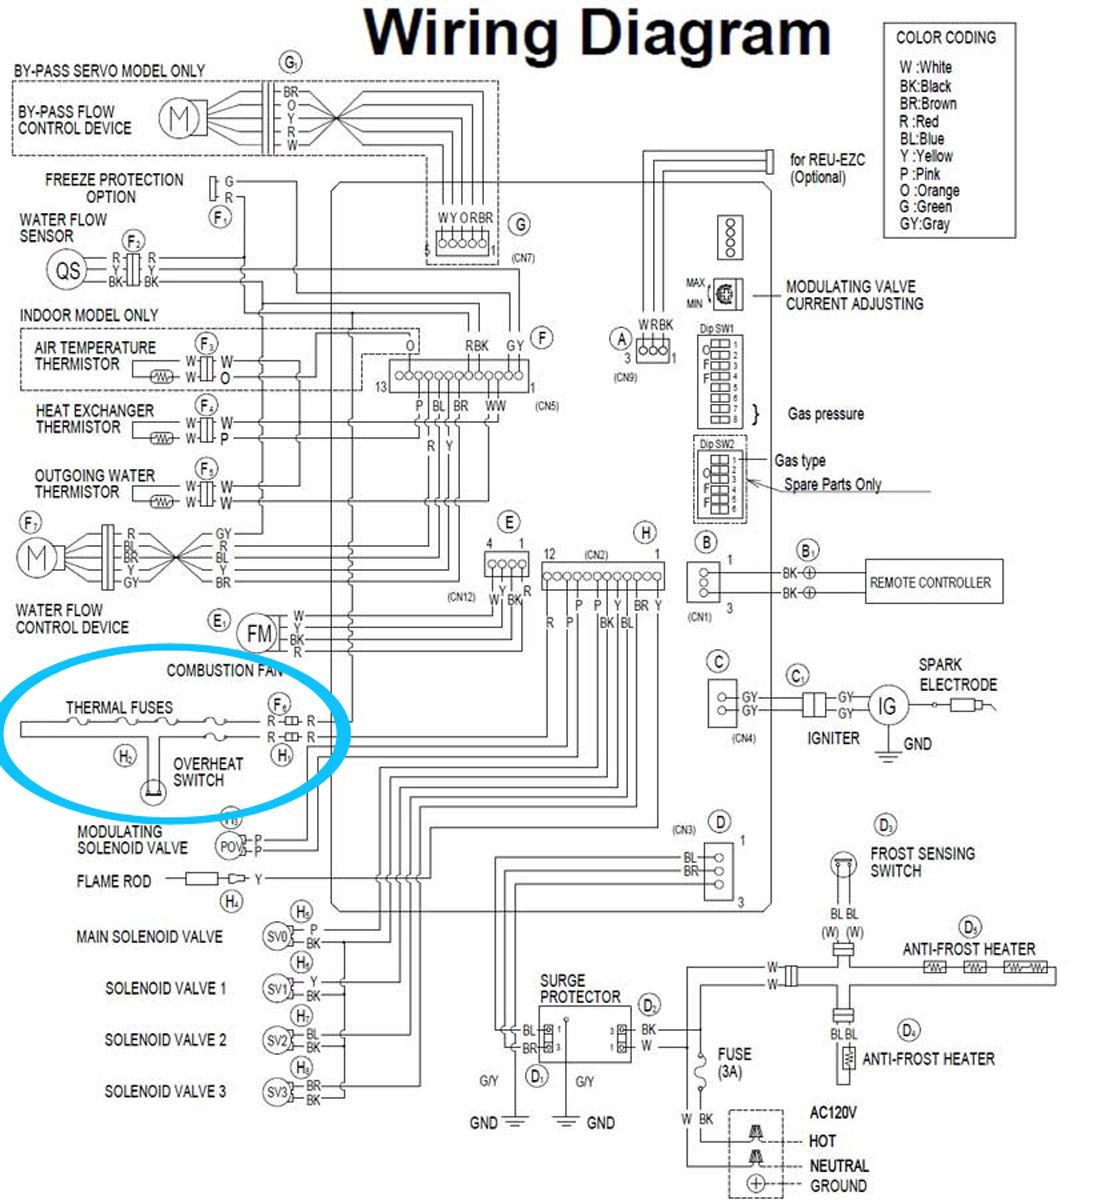 titan n 120 wiring diagram Download-Check the electric troubleshoot from 2008 pdf 3-j